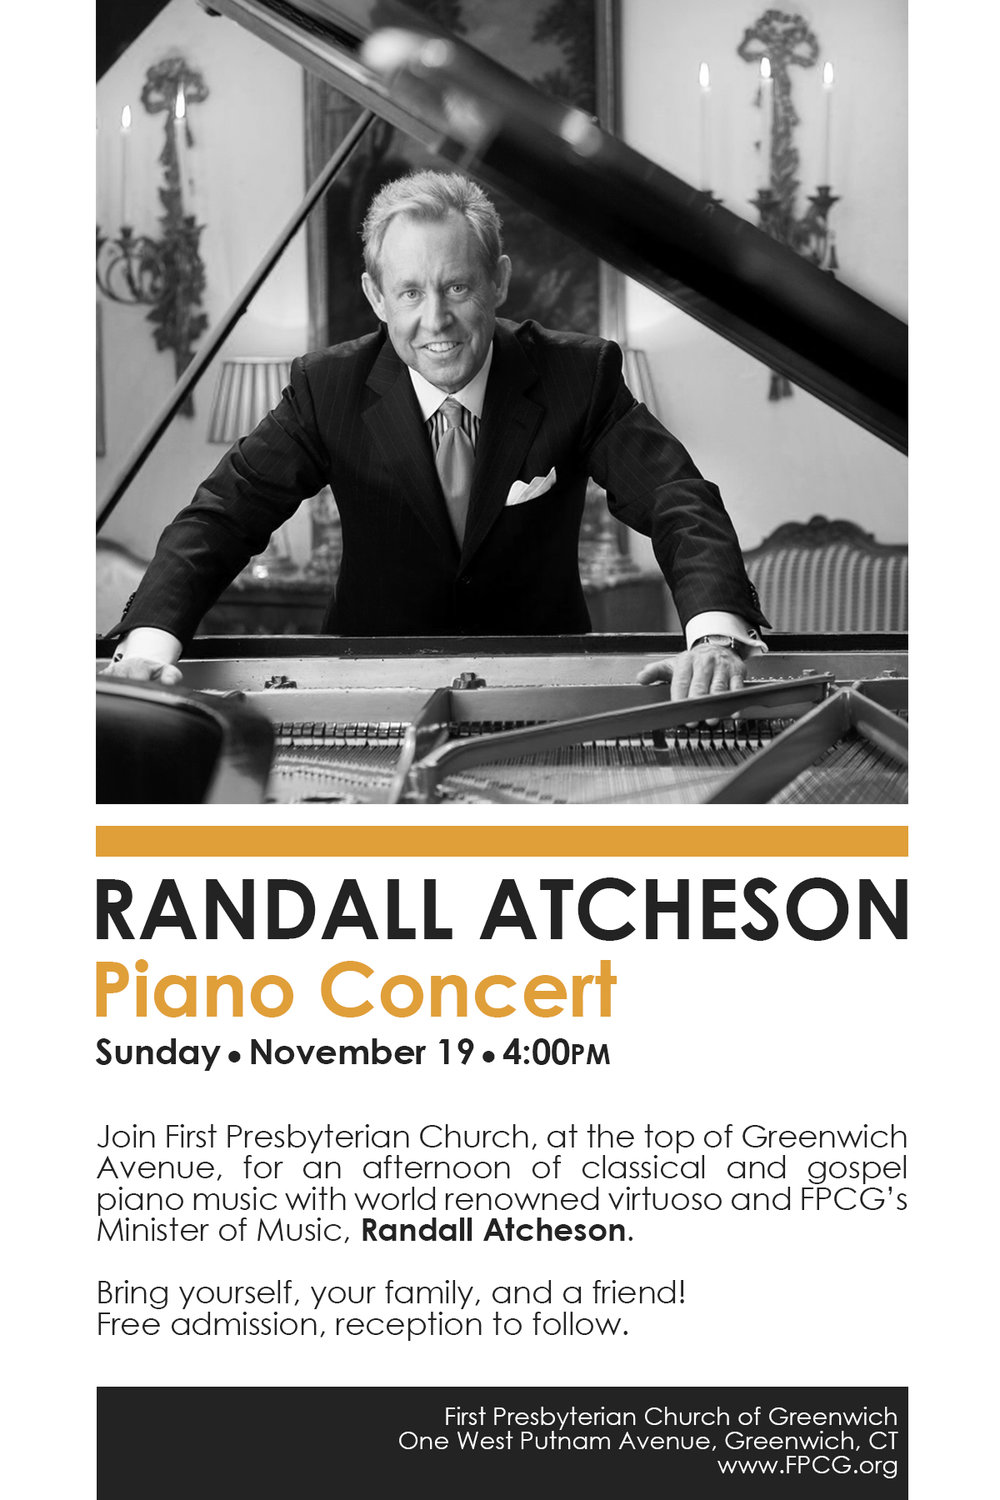 POST_DFT 4x6 front_Randall Atcheson 11.19.2017 Concert_1710.jpg